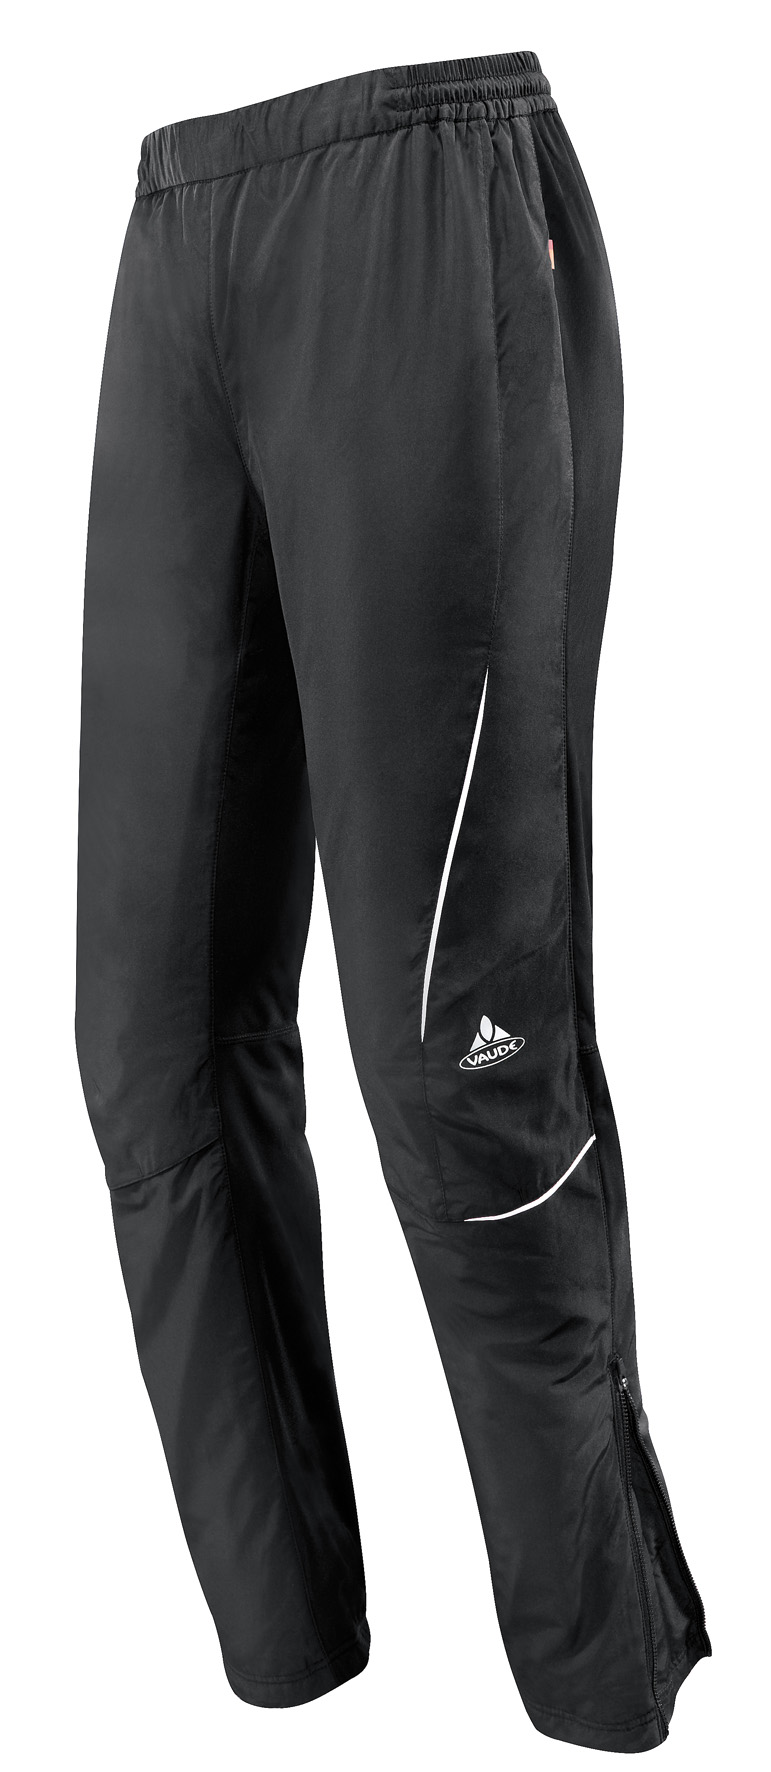 Men´s Falun Pants III black Größe S - schneider-sports